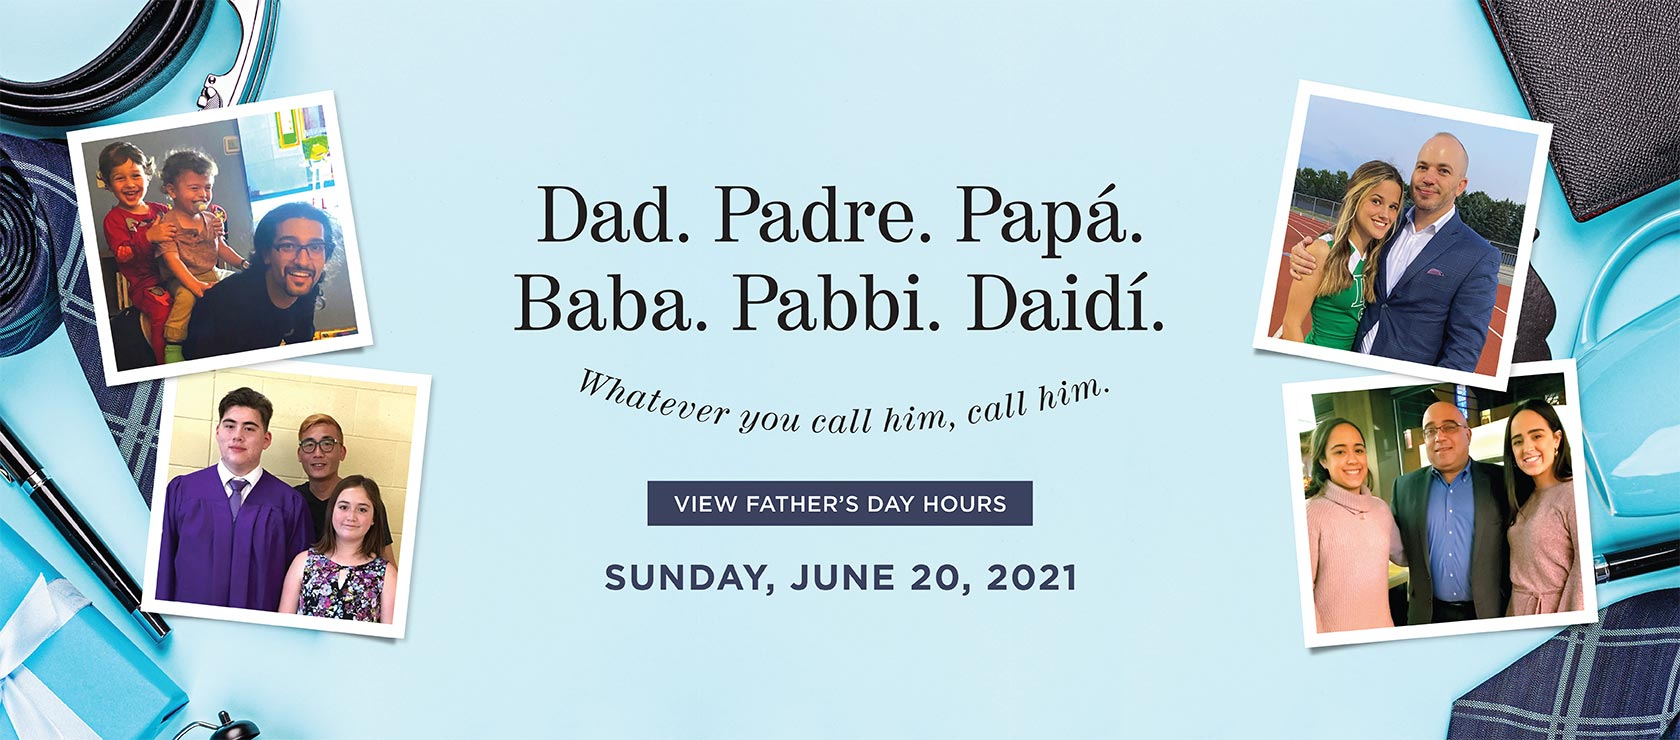 Dad. Padre. Pap. Baba. Pabbi. Diadi. Whatever you call him, call him. View Father's Day Hours.